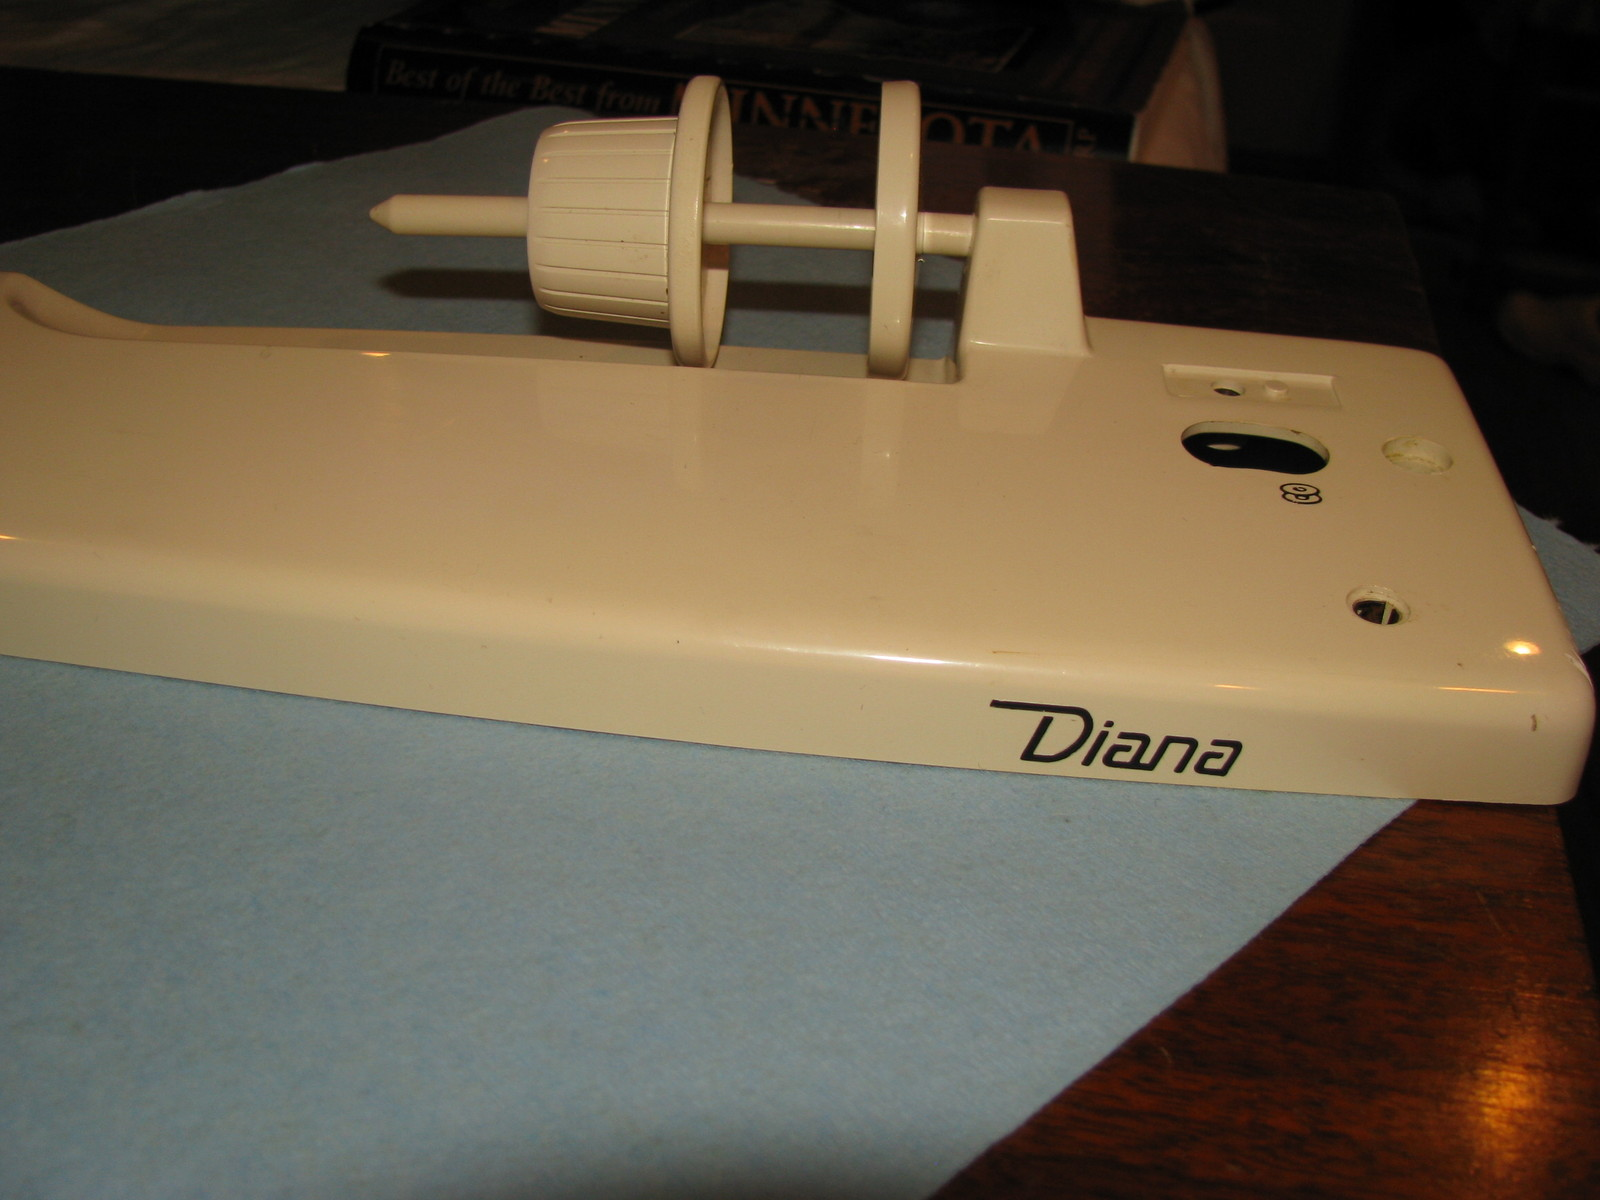 singer diana sewing machine